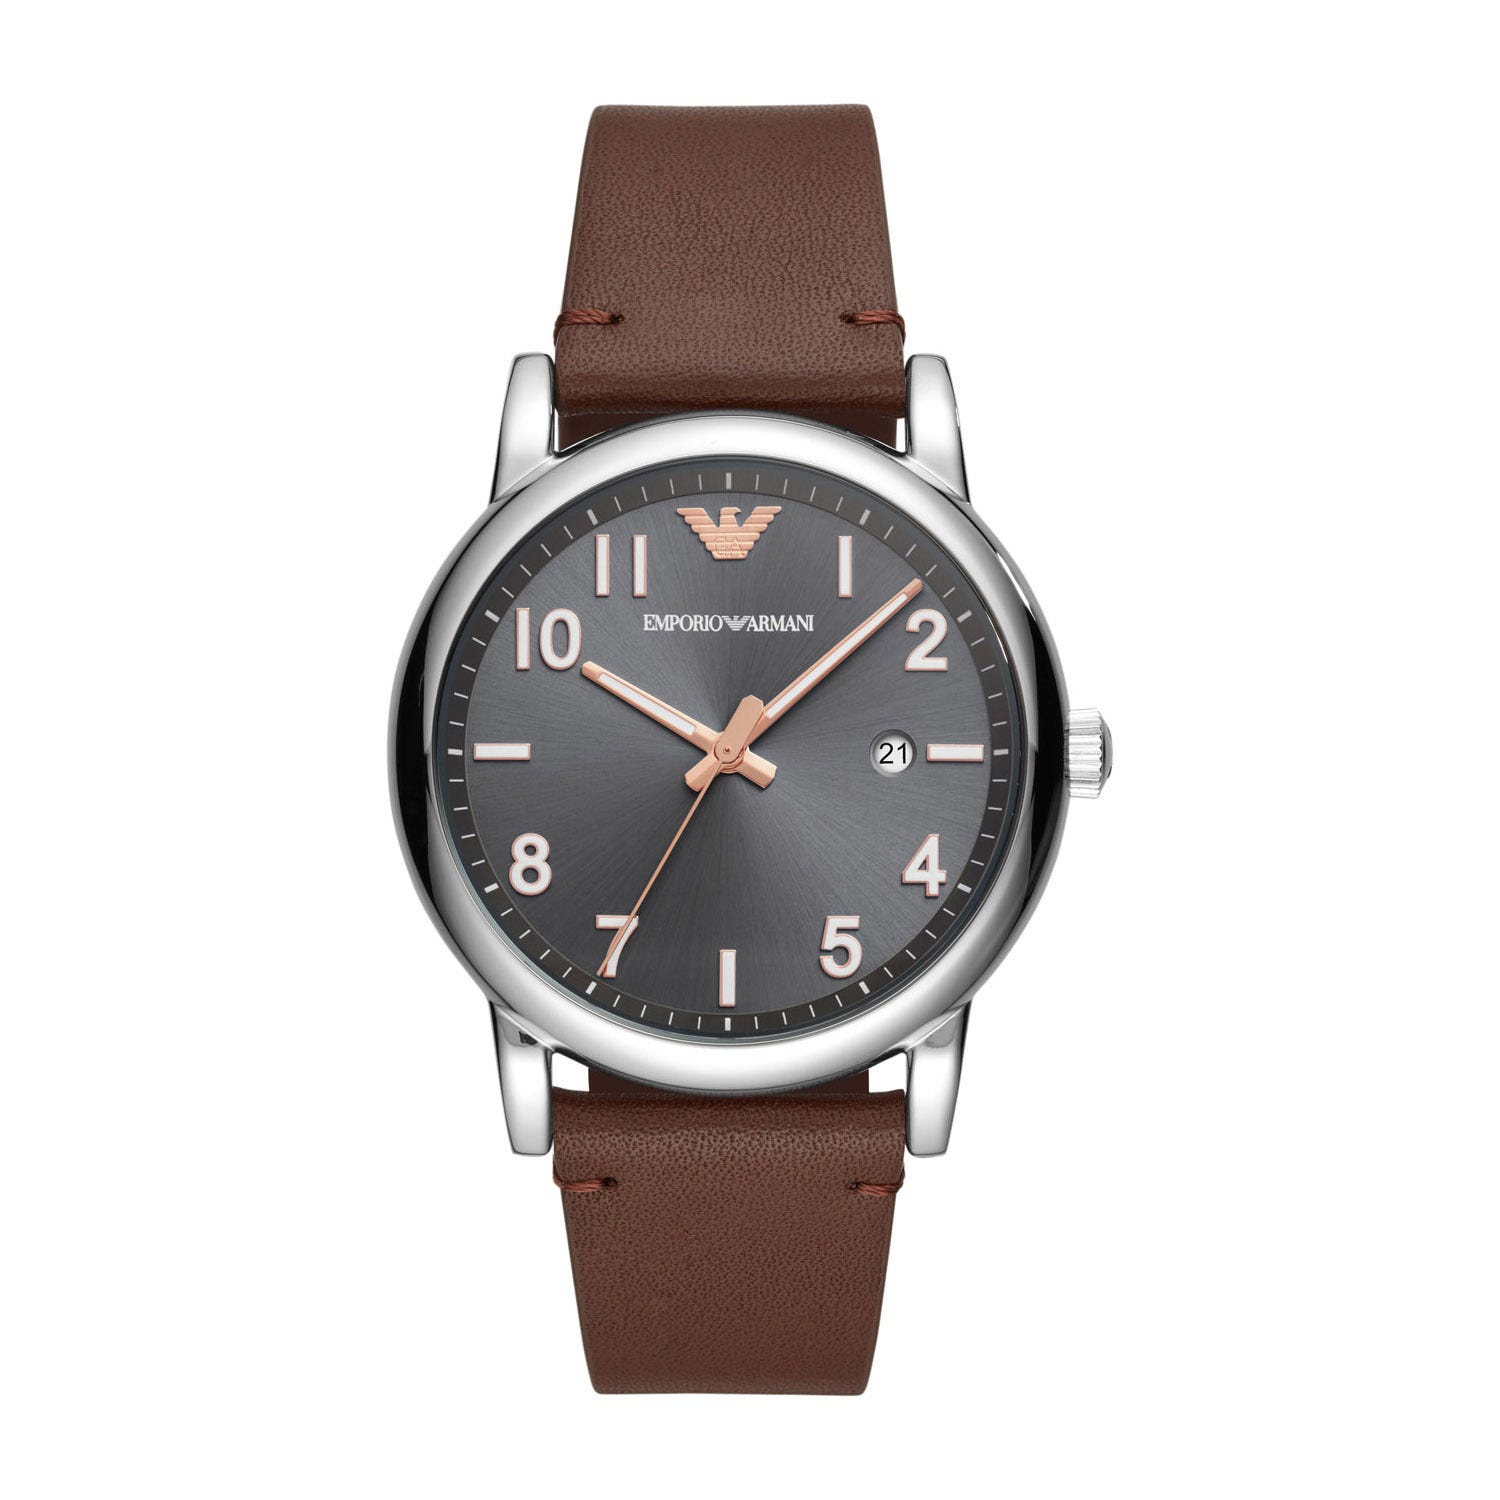 Emporio Armani Brown Leather 43mm Men's Watch